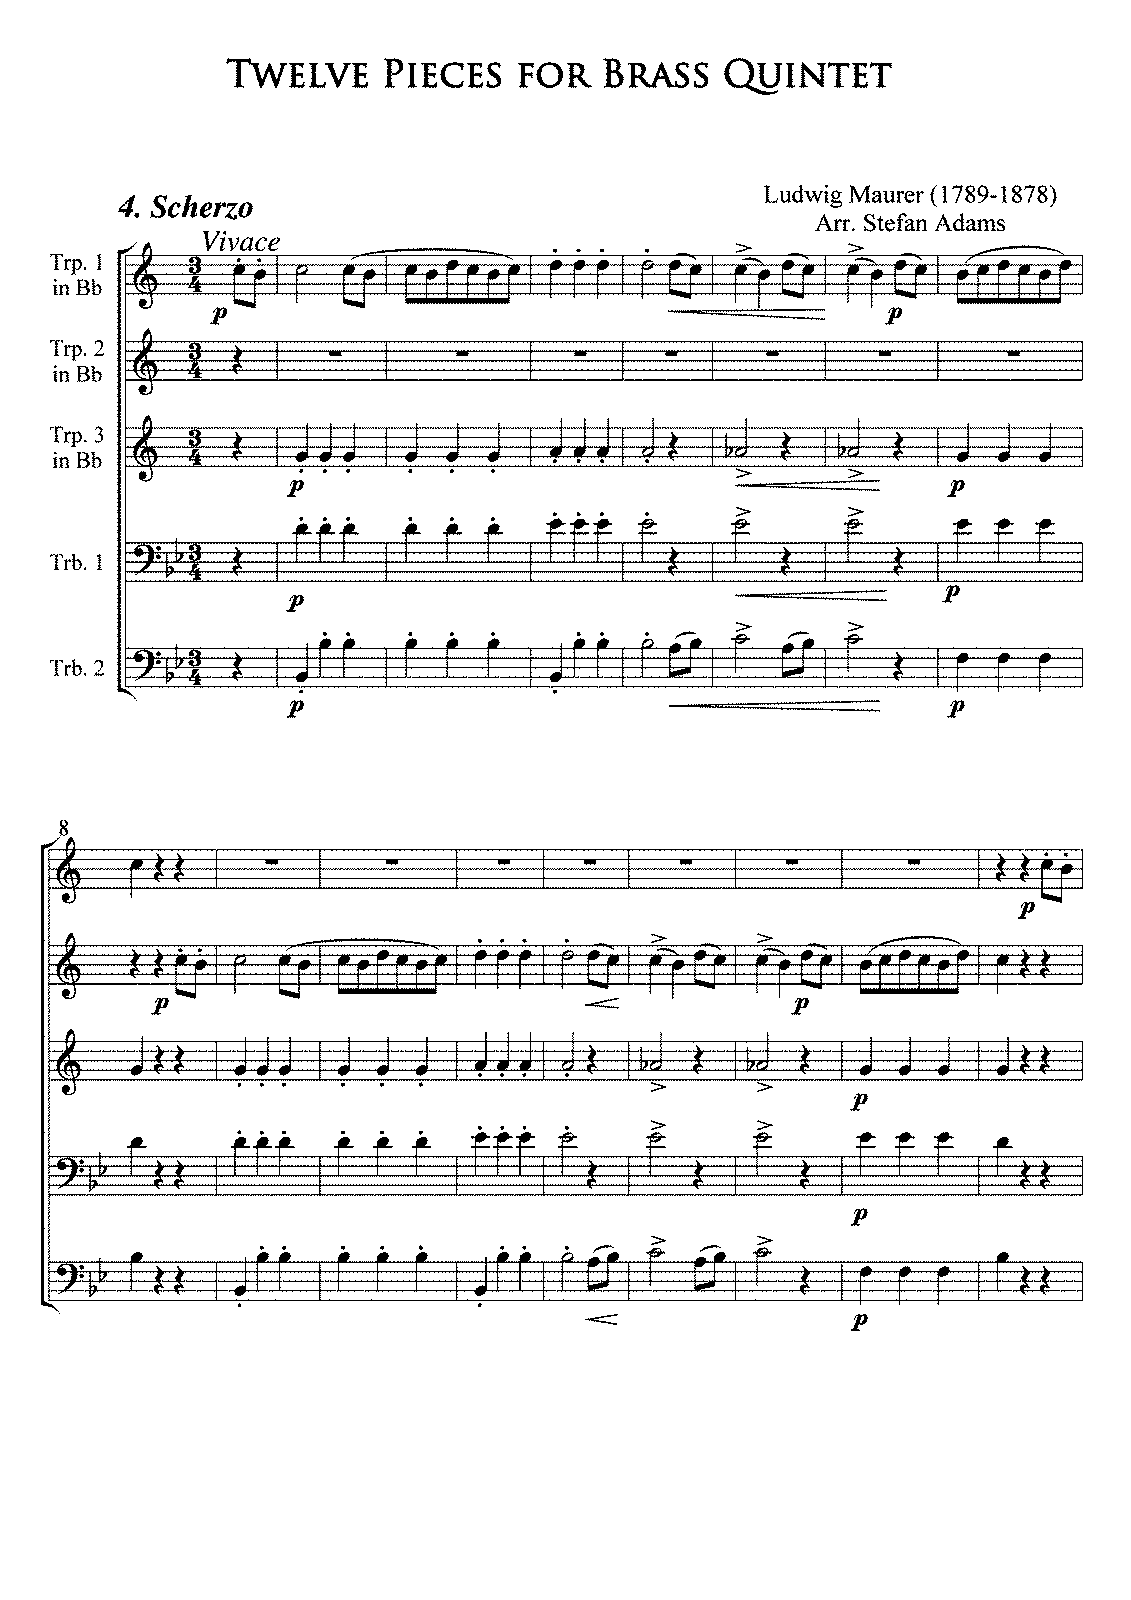 PMLP185891-Maurer Nr4 Scherzo Complete Score and Parts with Trp in Bb.pdf